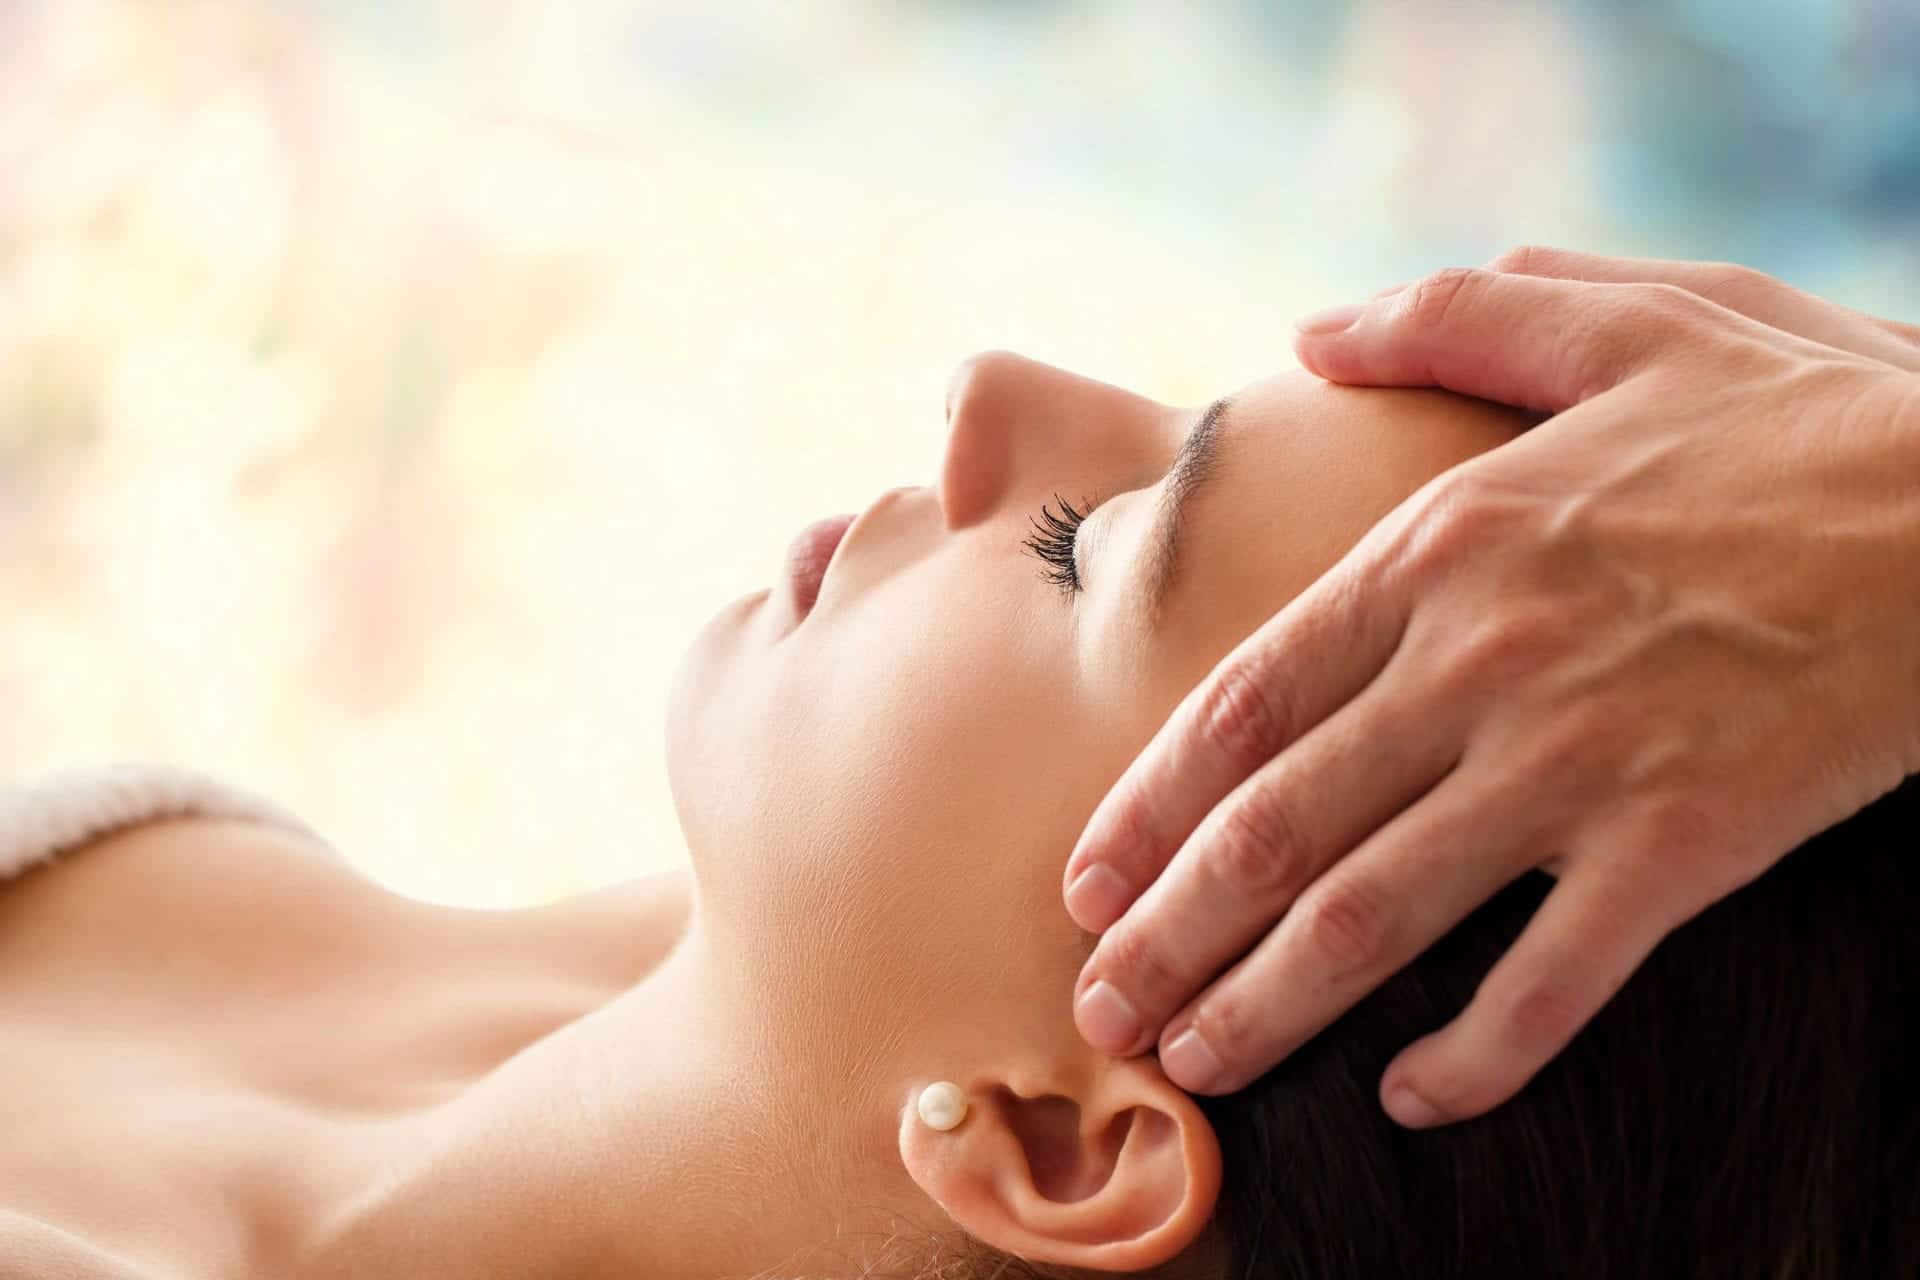 forehead stress relief acupuncture charlotte nc infertility fertility pain acupuncturist dry needling